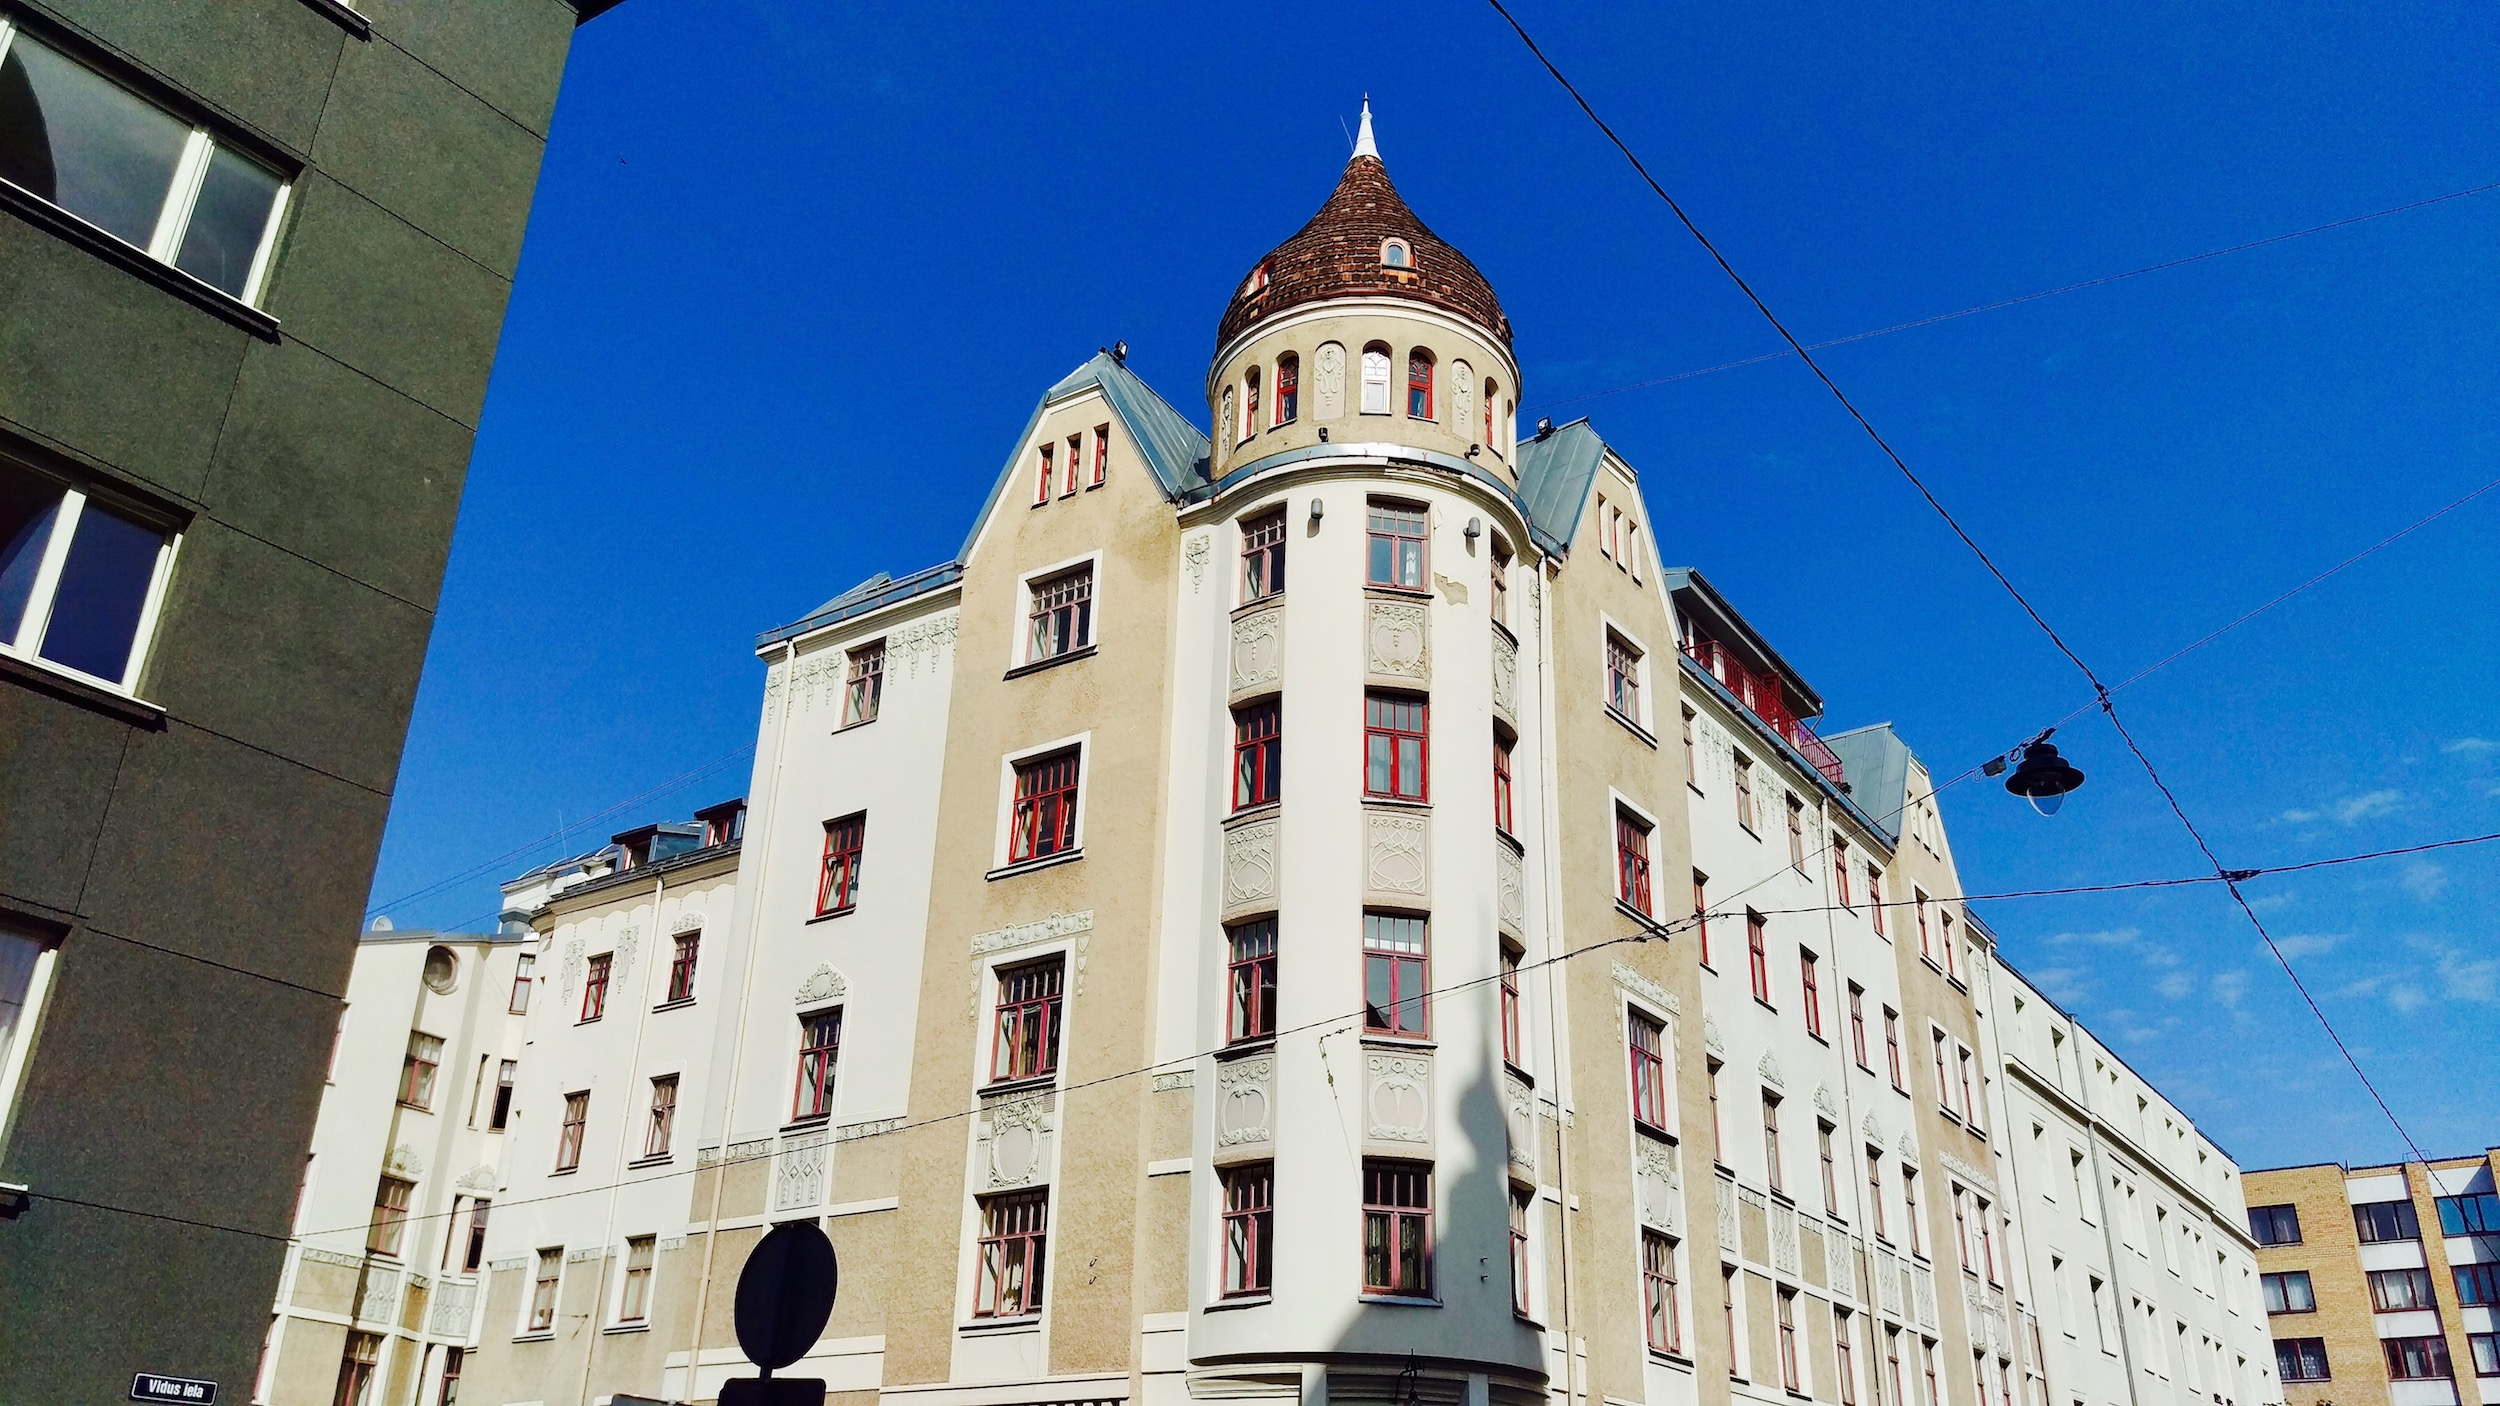 Art Nouveau architecture in Riga makes up roughly one third of all buildings in the centre of Riga